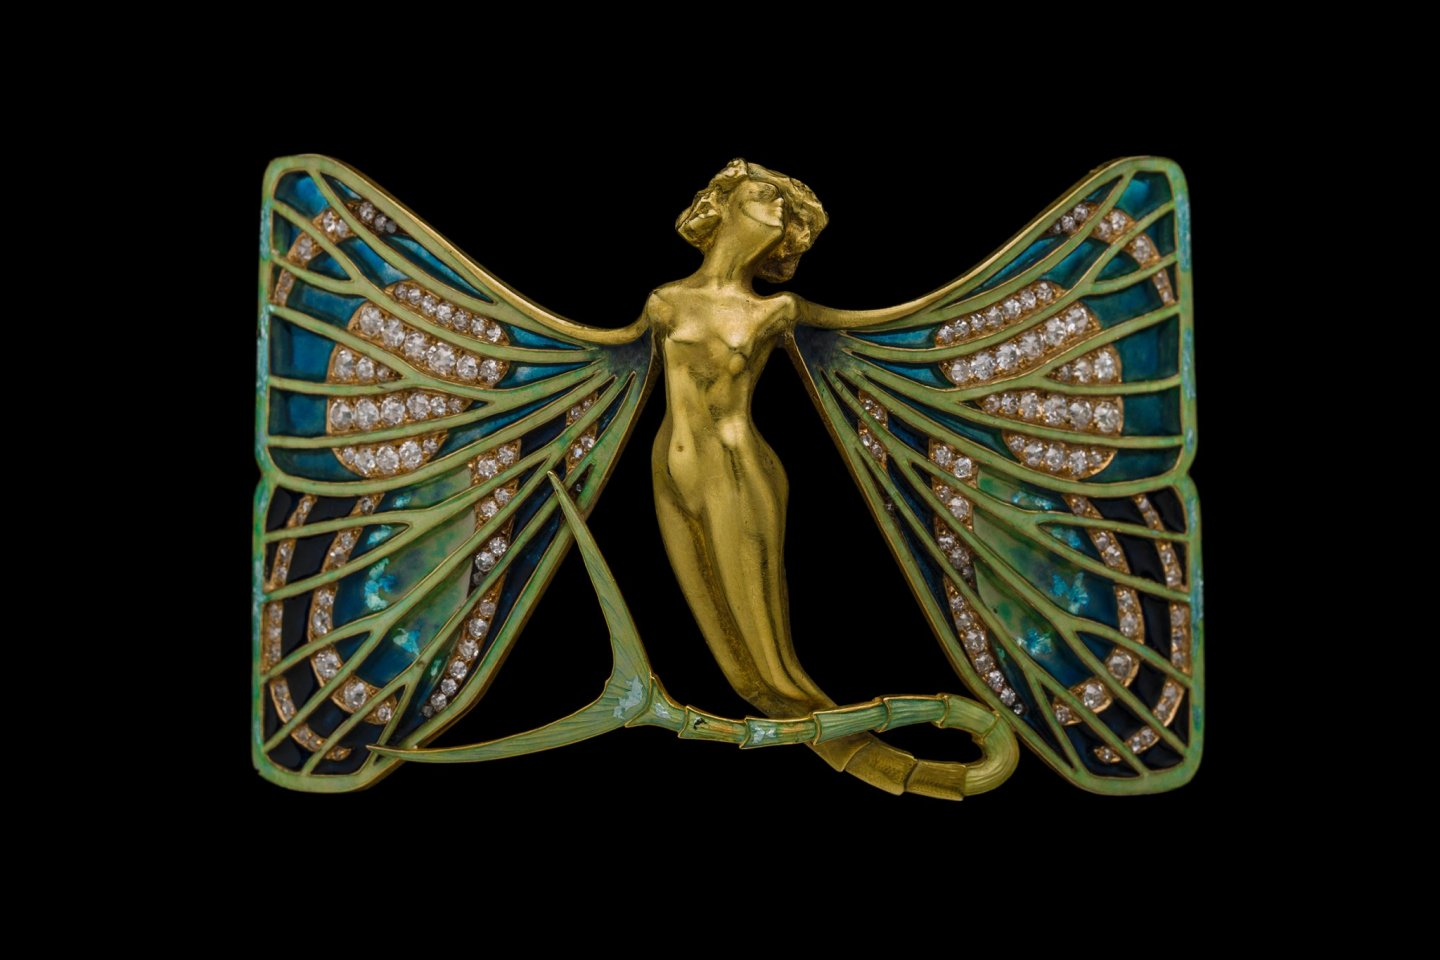 Lalique\'s works were regularly inspired by nature